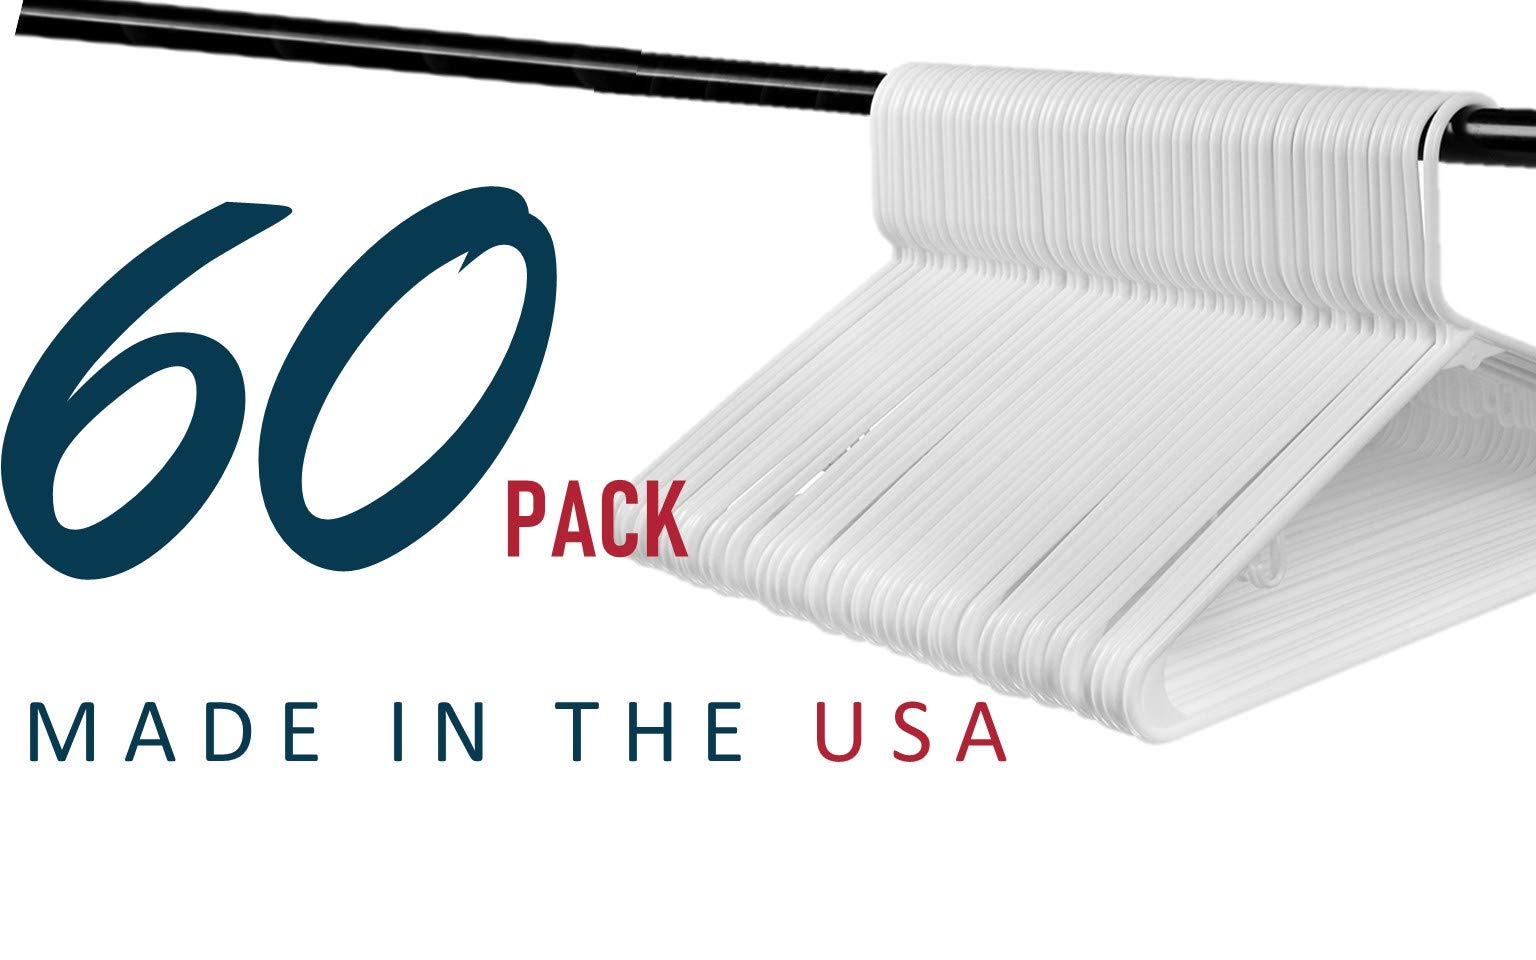 Best Standard Everyday White Plastic Hangers, Made in USA Long Lasting Tubular Hangers, Value Pack of 60. by Hangorize